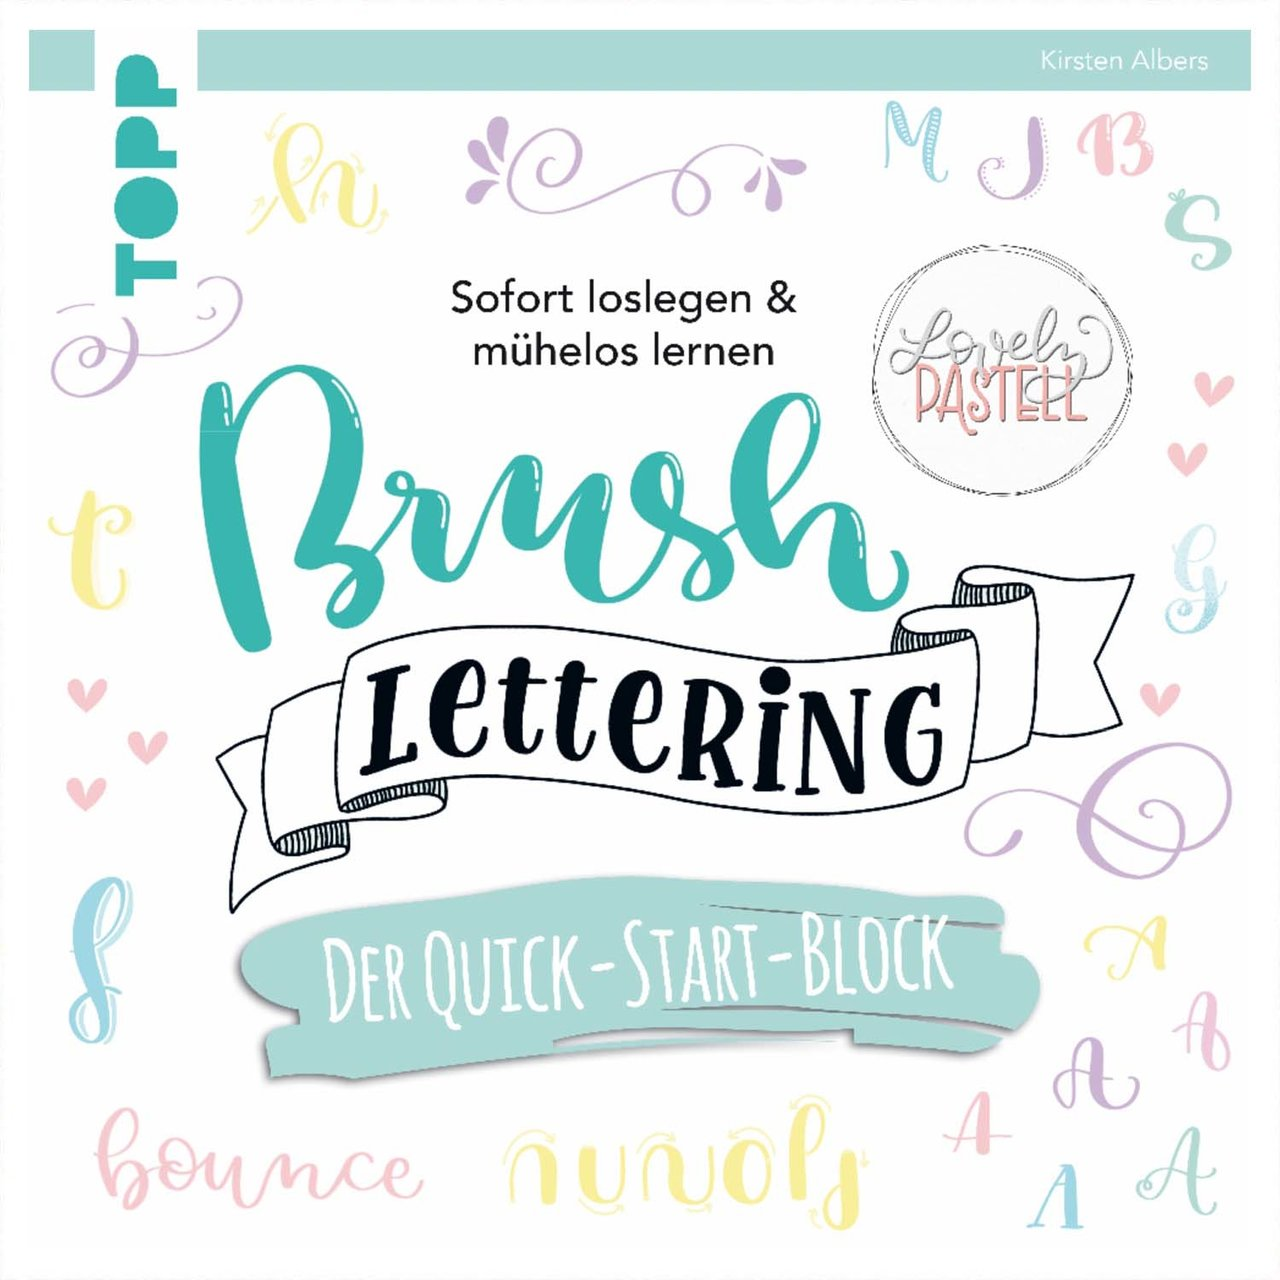 TOPP Brush Lettering. Der Quick-Start-Block von TOPP